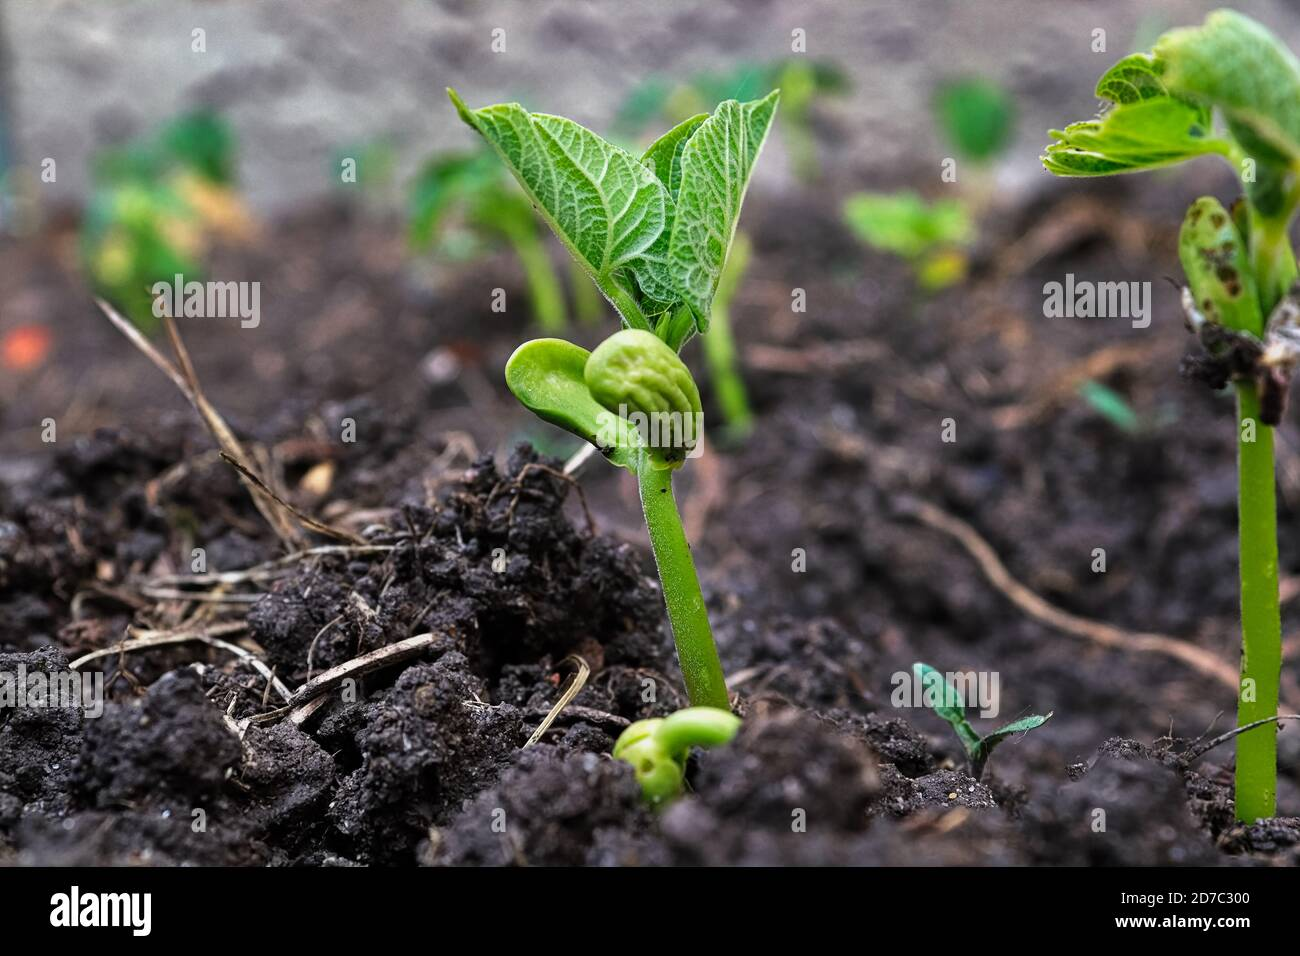 Young bean sprouts growing their first leaves Stock Photo